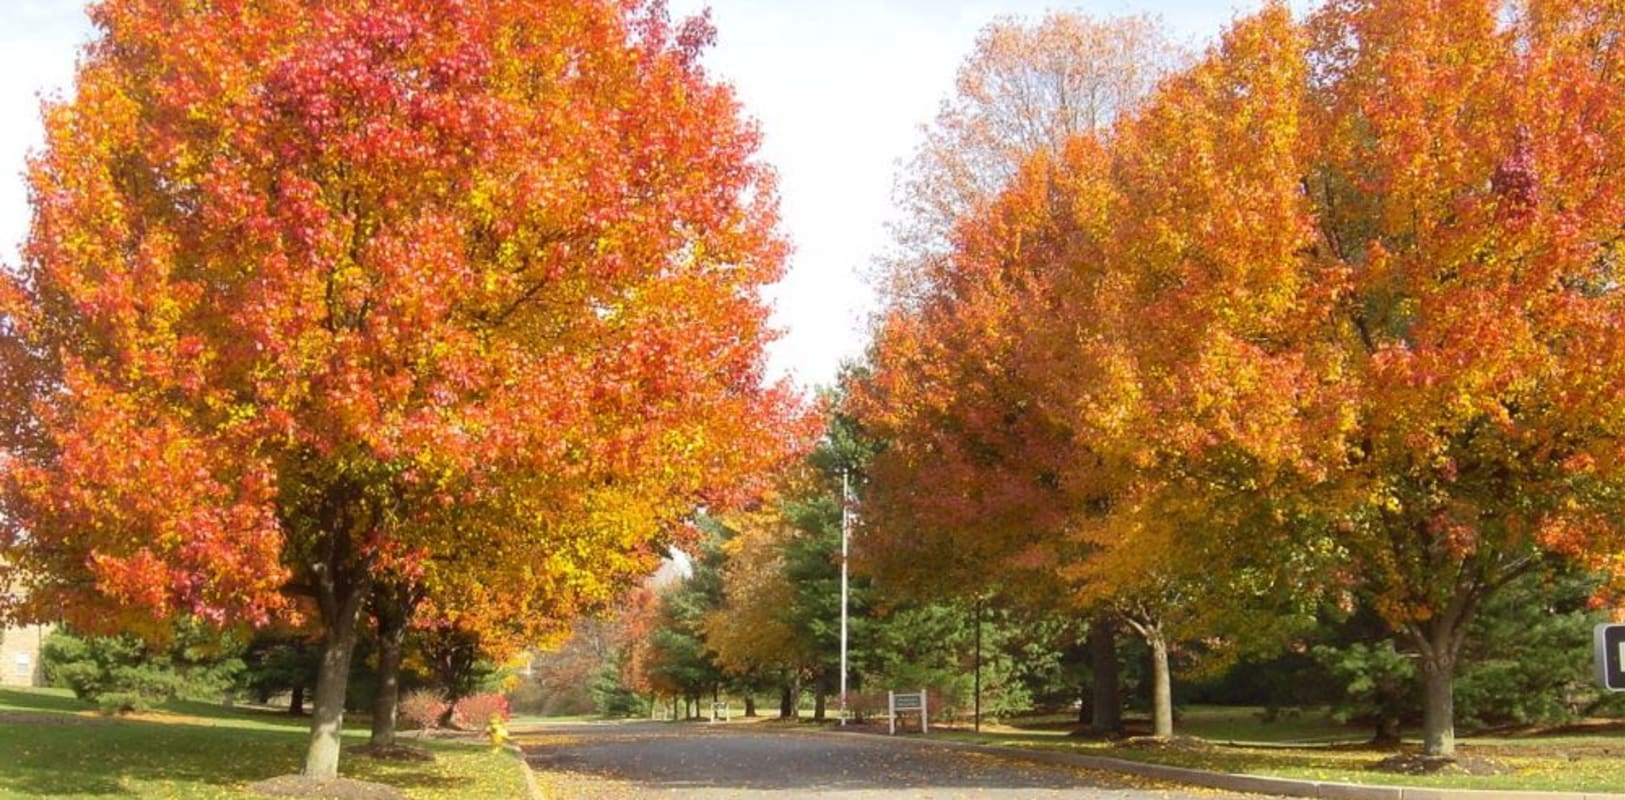 Huge lovely fall colored trees at Sharon Arms Apartments in Robbinsville, New Jersey